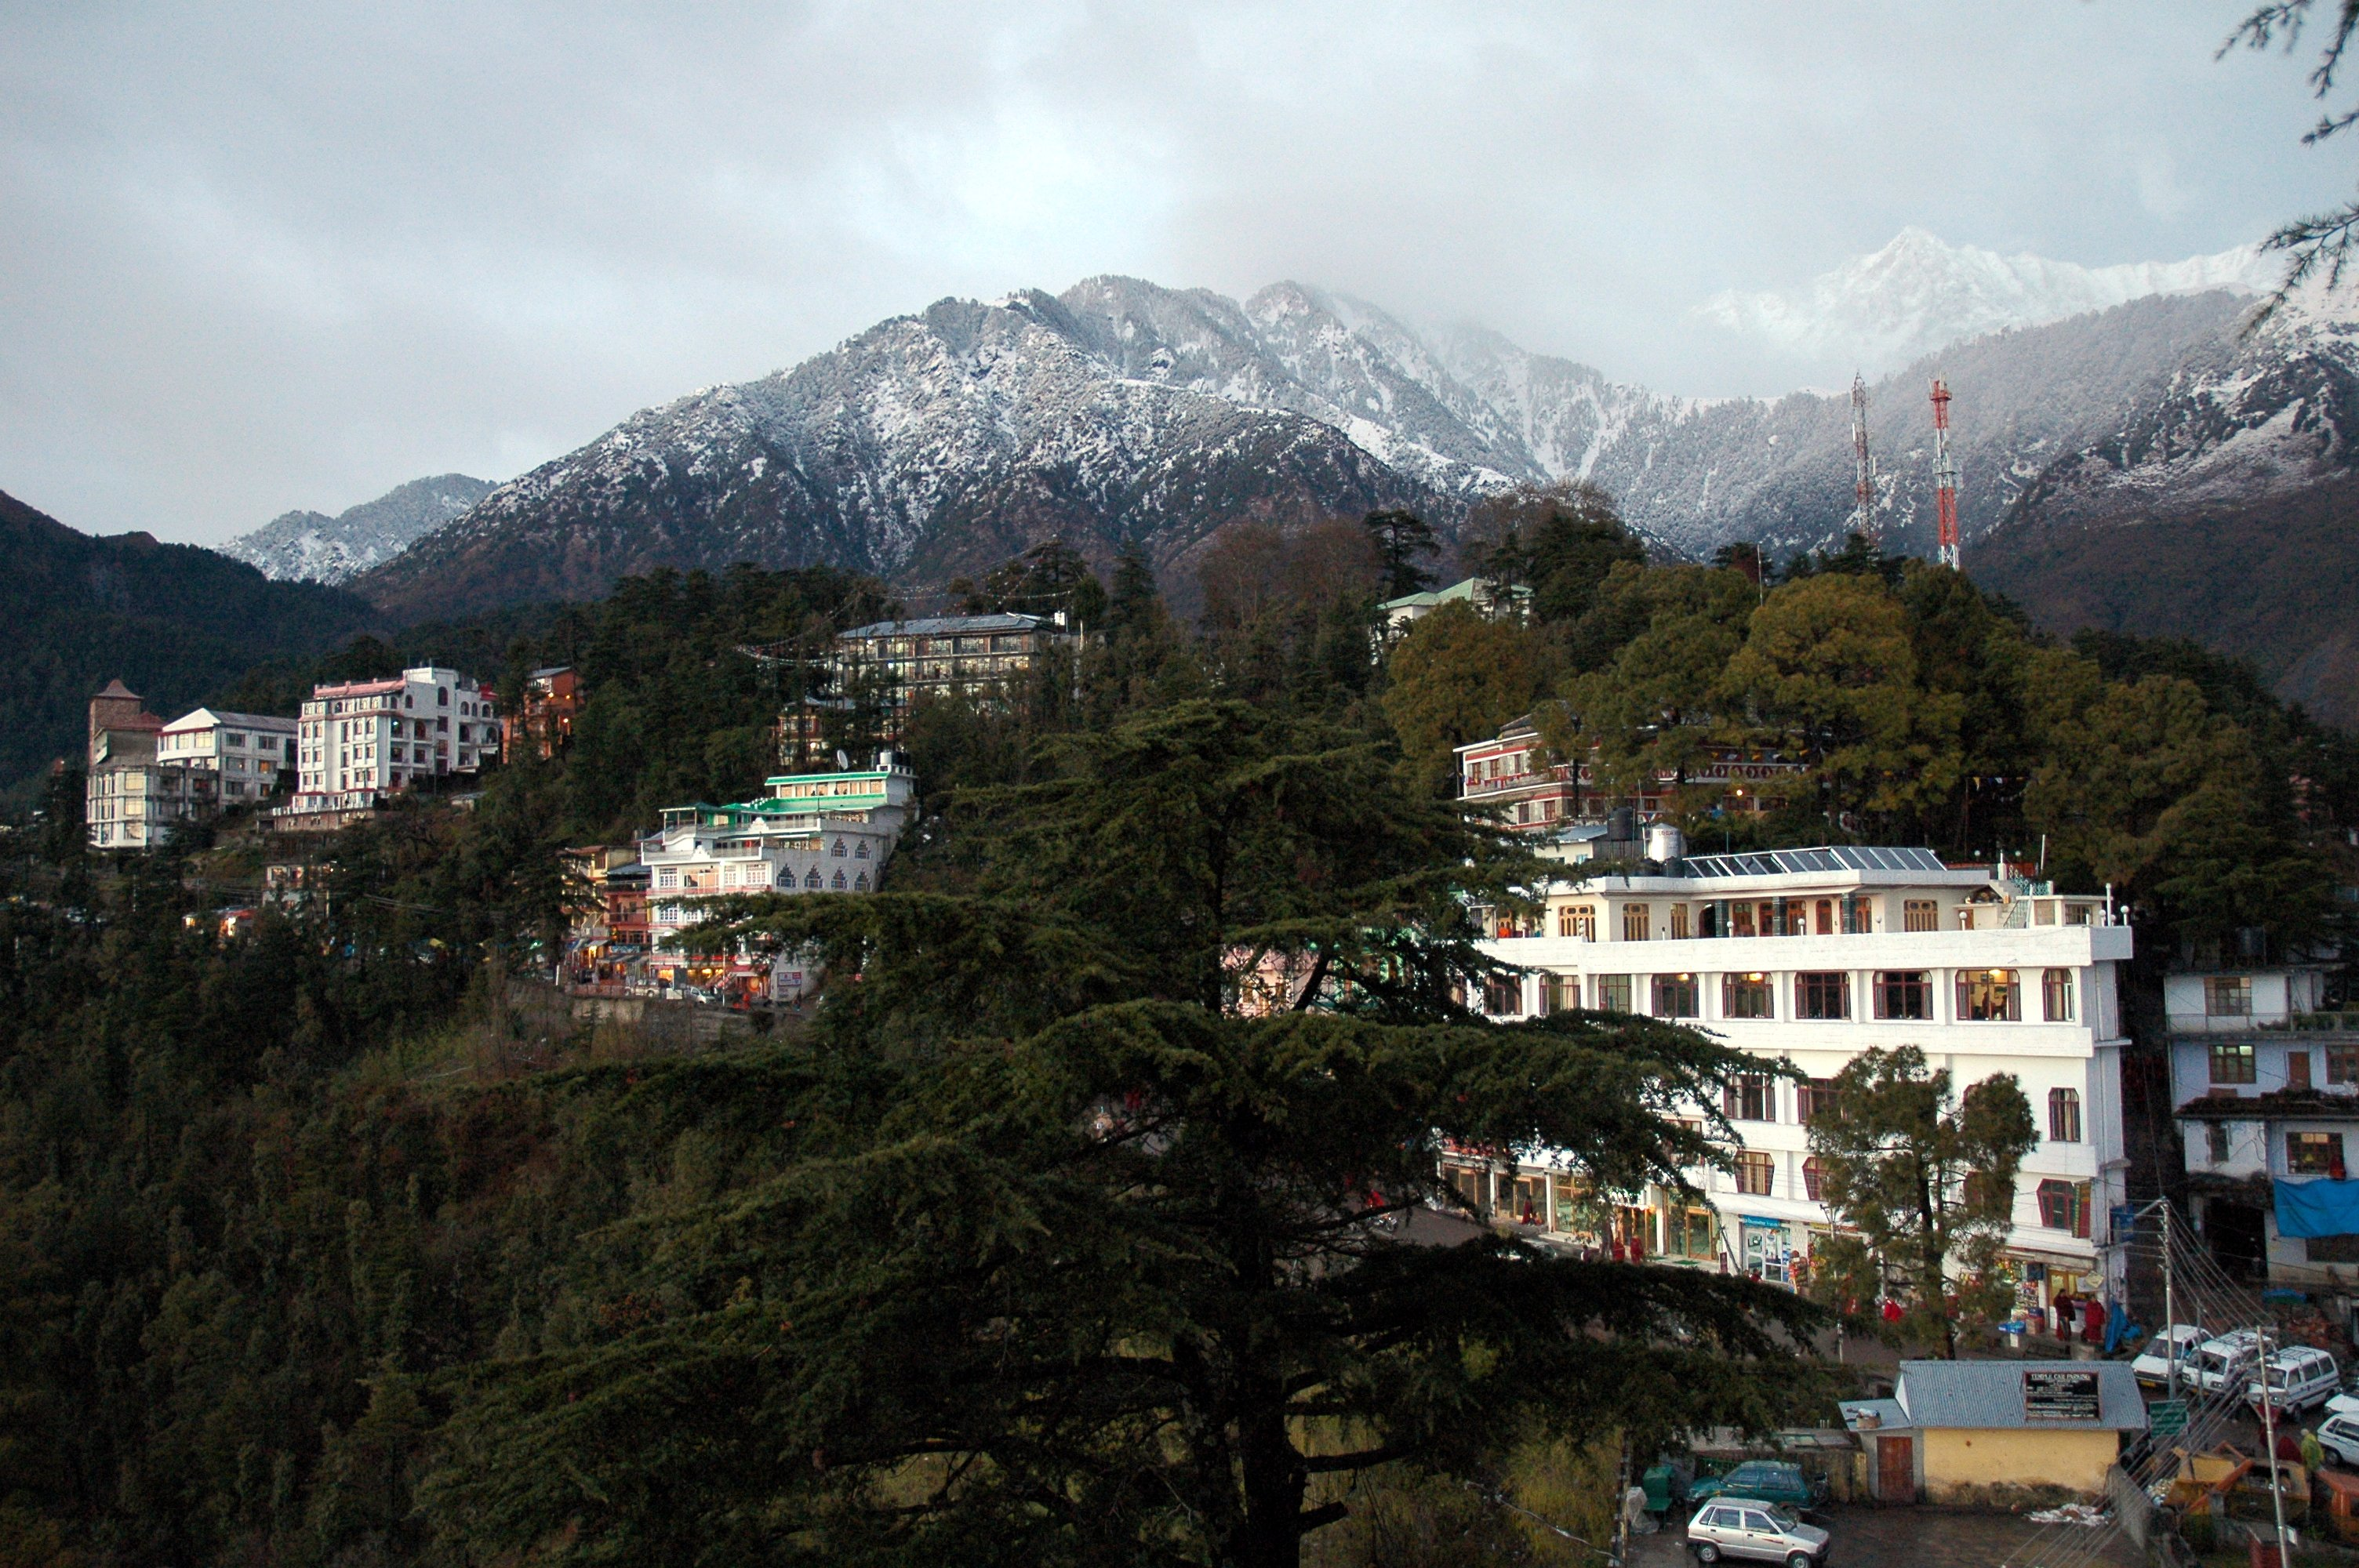 Dharamshala India  city photos gallery : Dharamsala McLeod Ganj , Himachal Pradesh, India